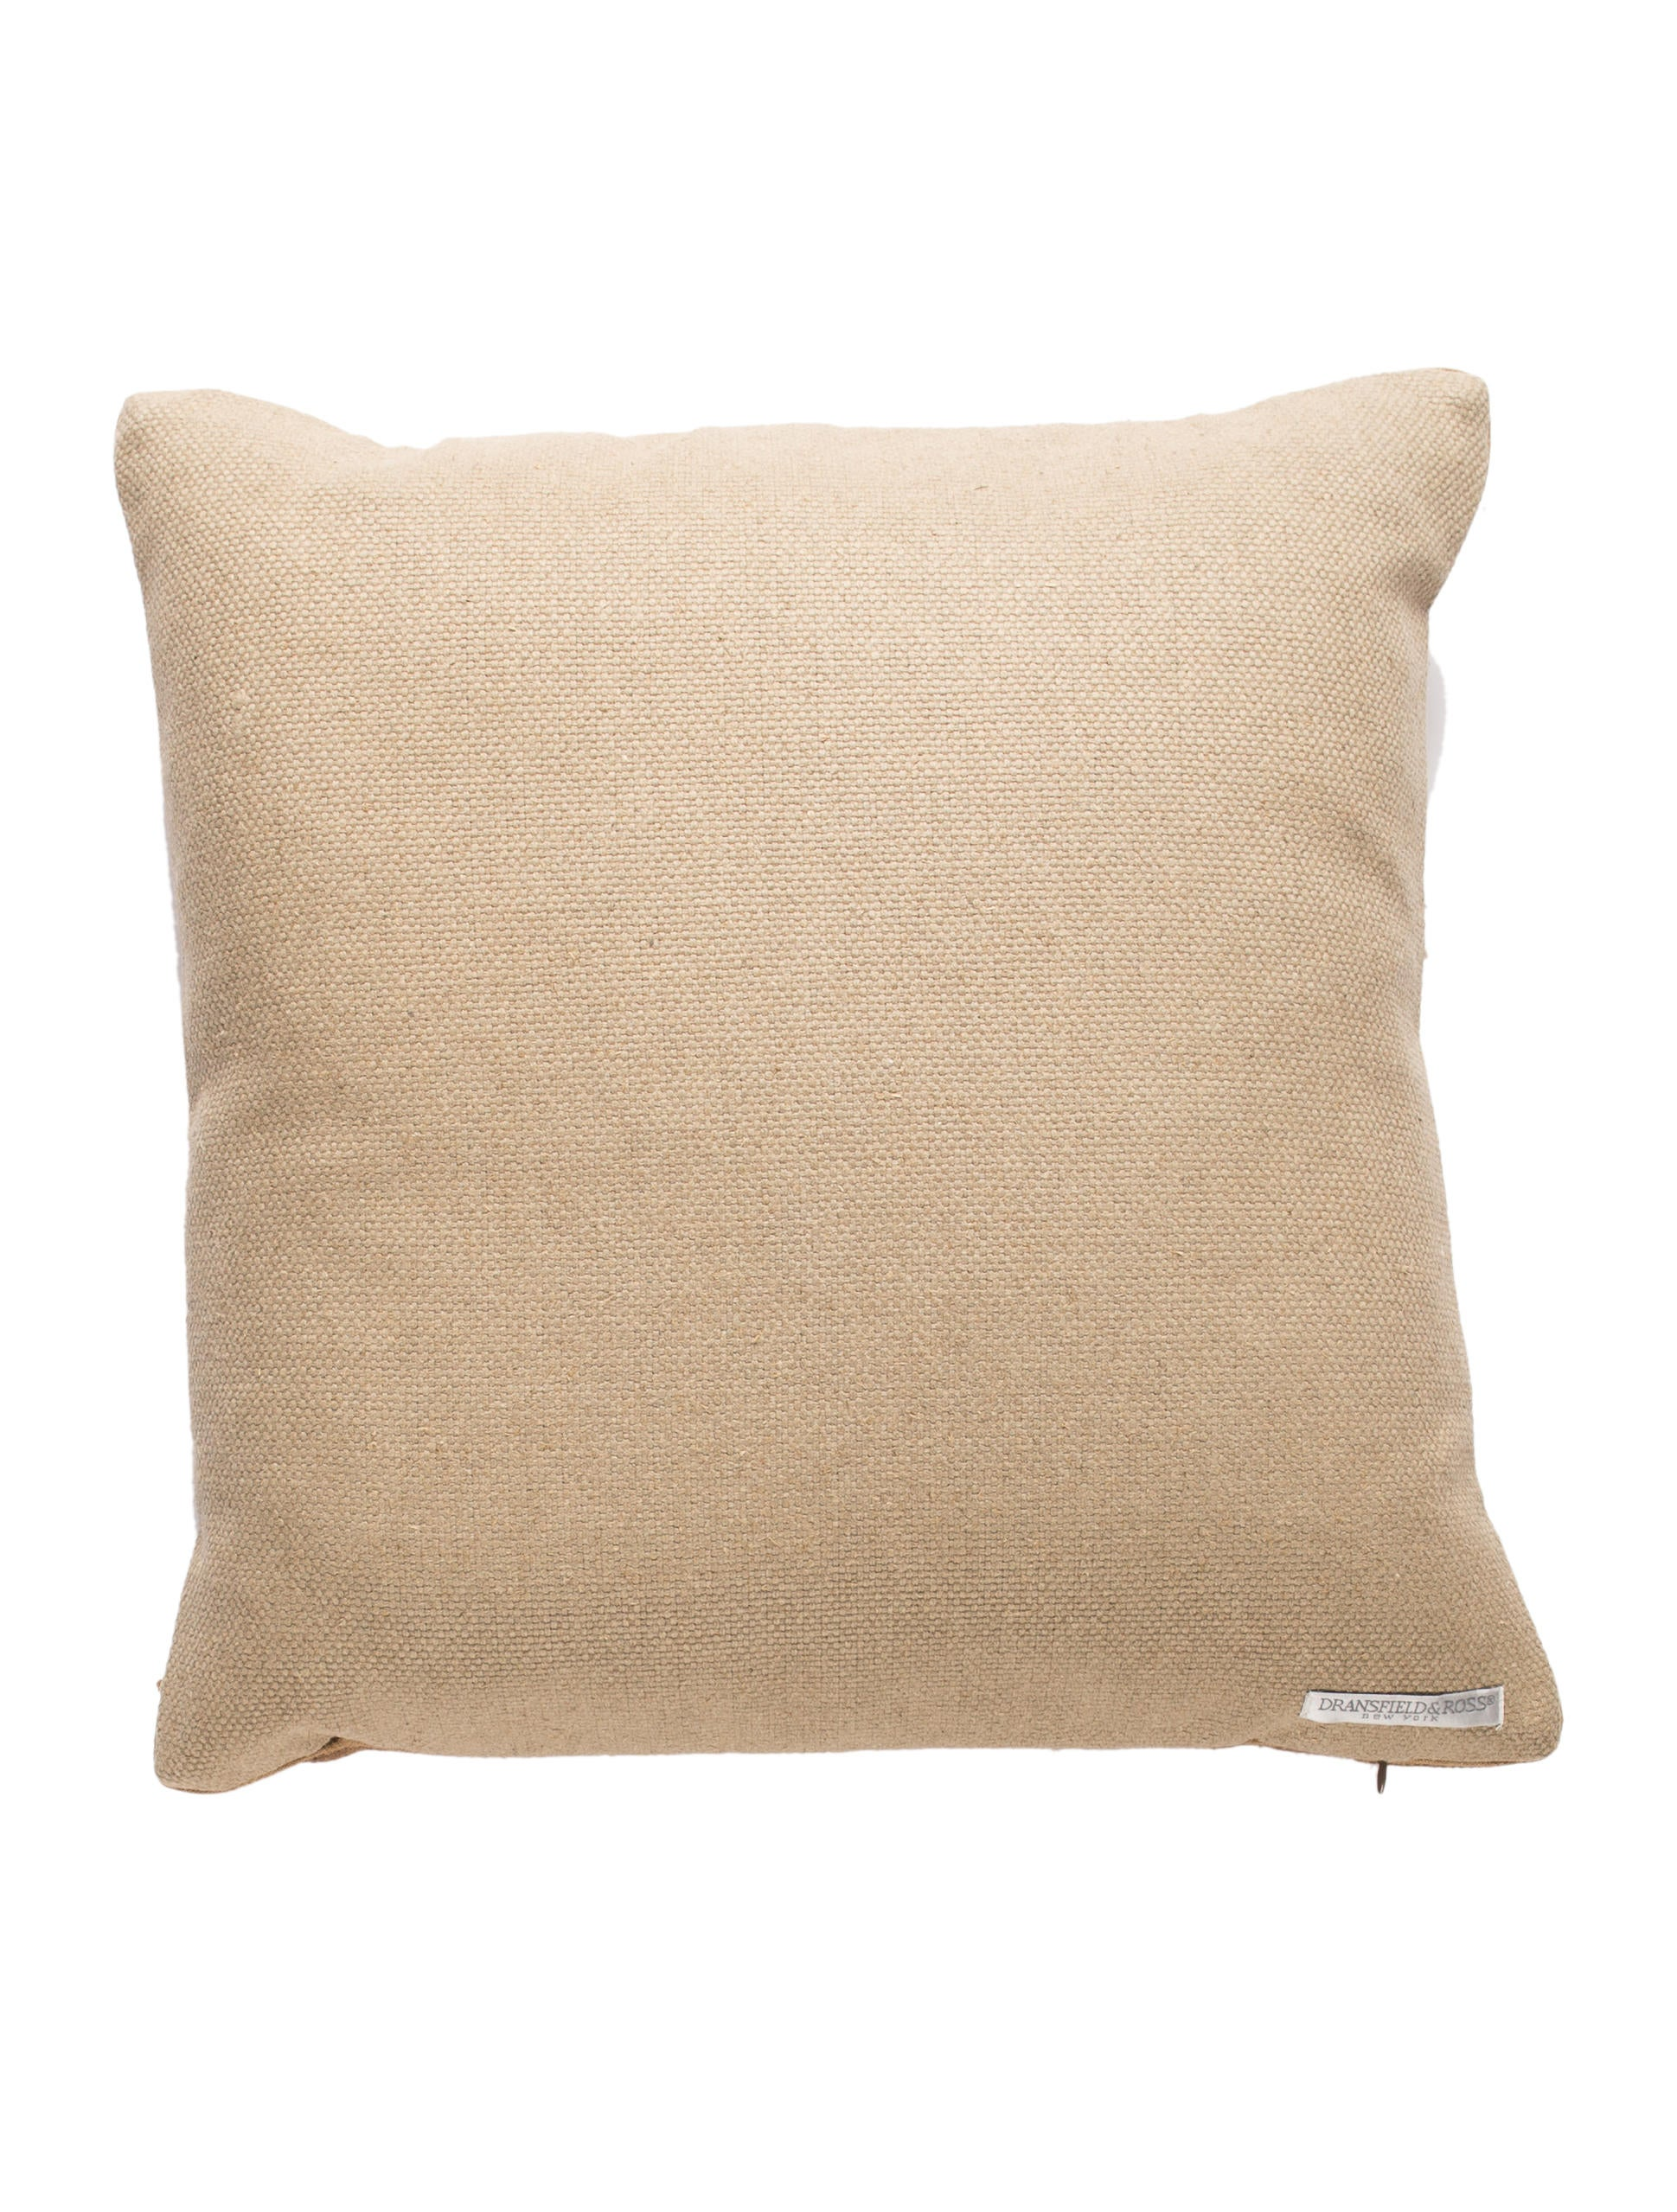 Down Throw Pillows For Couch : Dransfield & Ross Down Throw Pillow w/ Tags - Blankets And Pillows - WDRNS20045 The RealReal